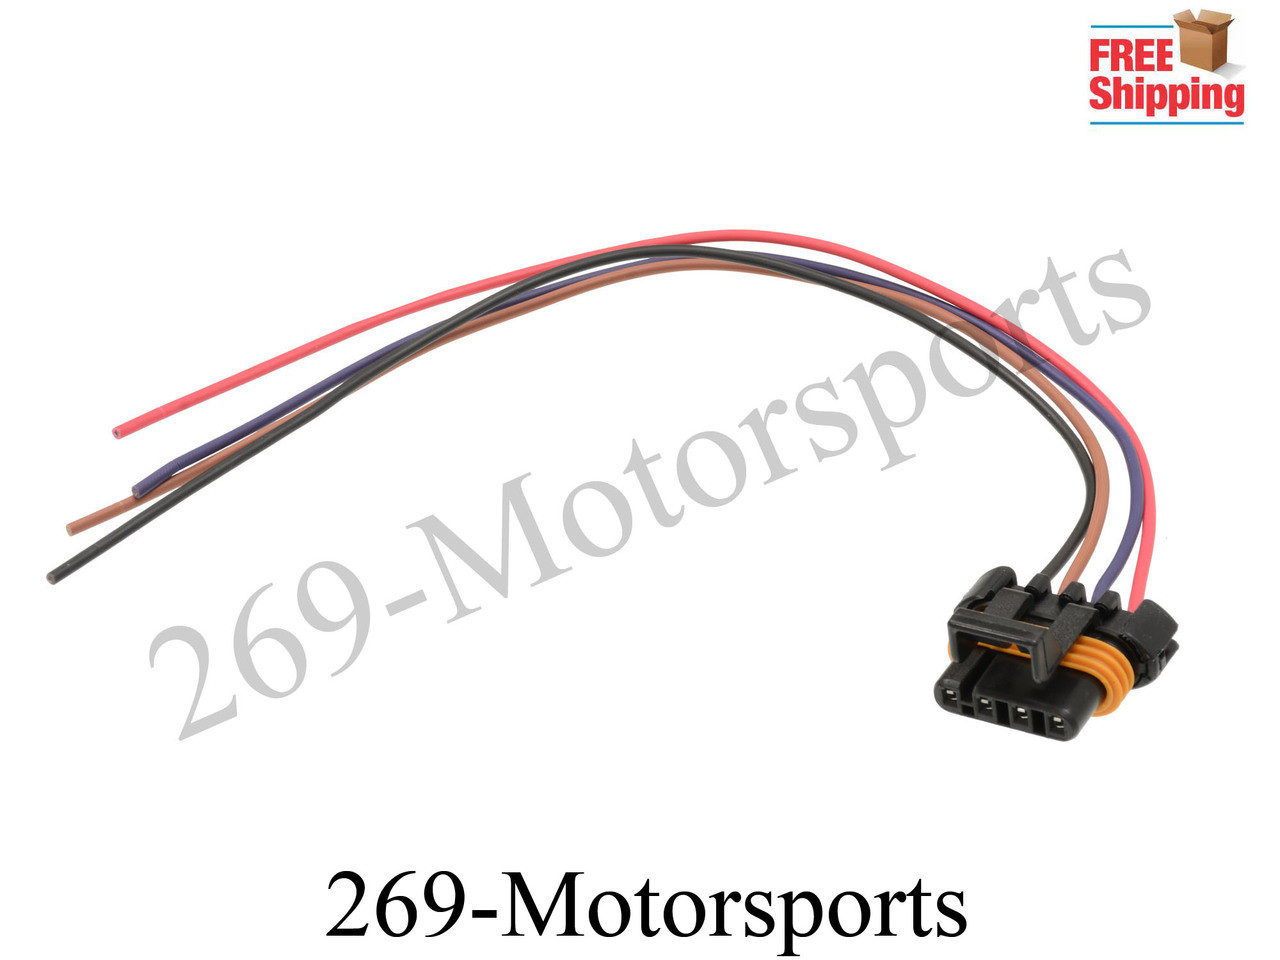 O2 Sensor Wiring Harness Library Lt133 Oxygen Connector Pigtail For Gm Camaro Firebird Ls1 Lt1